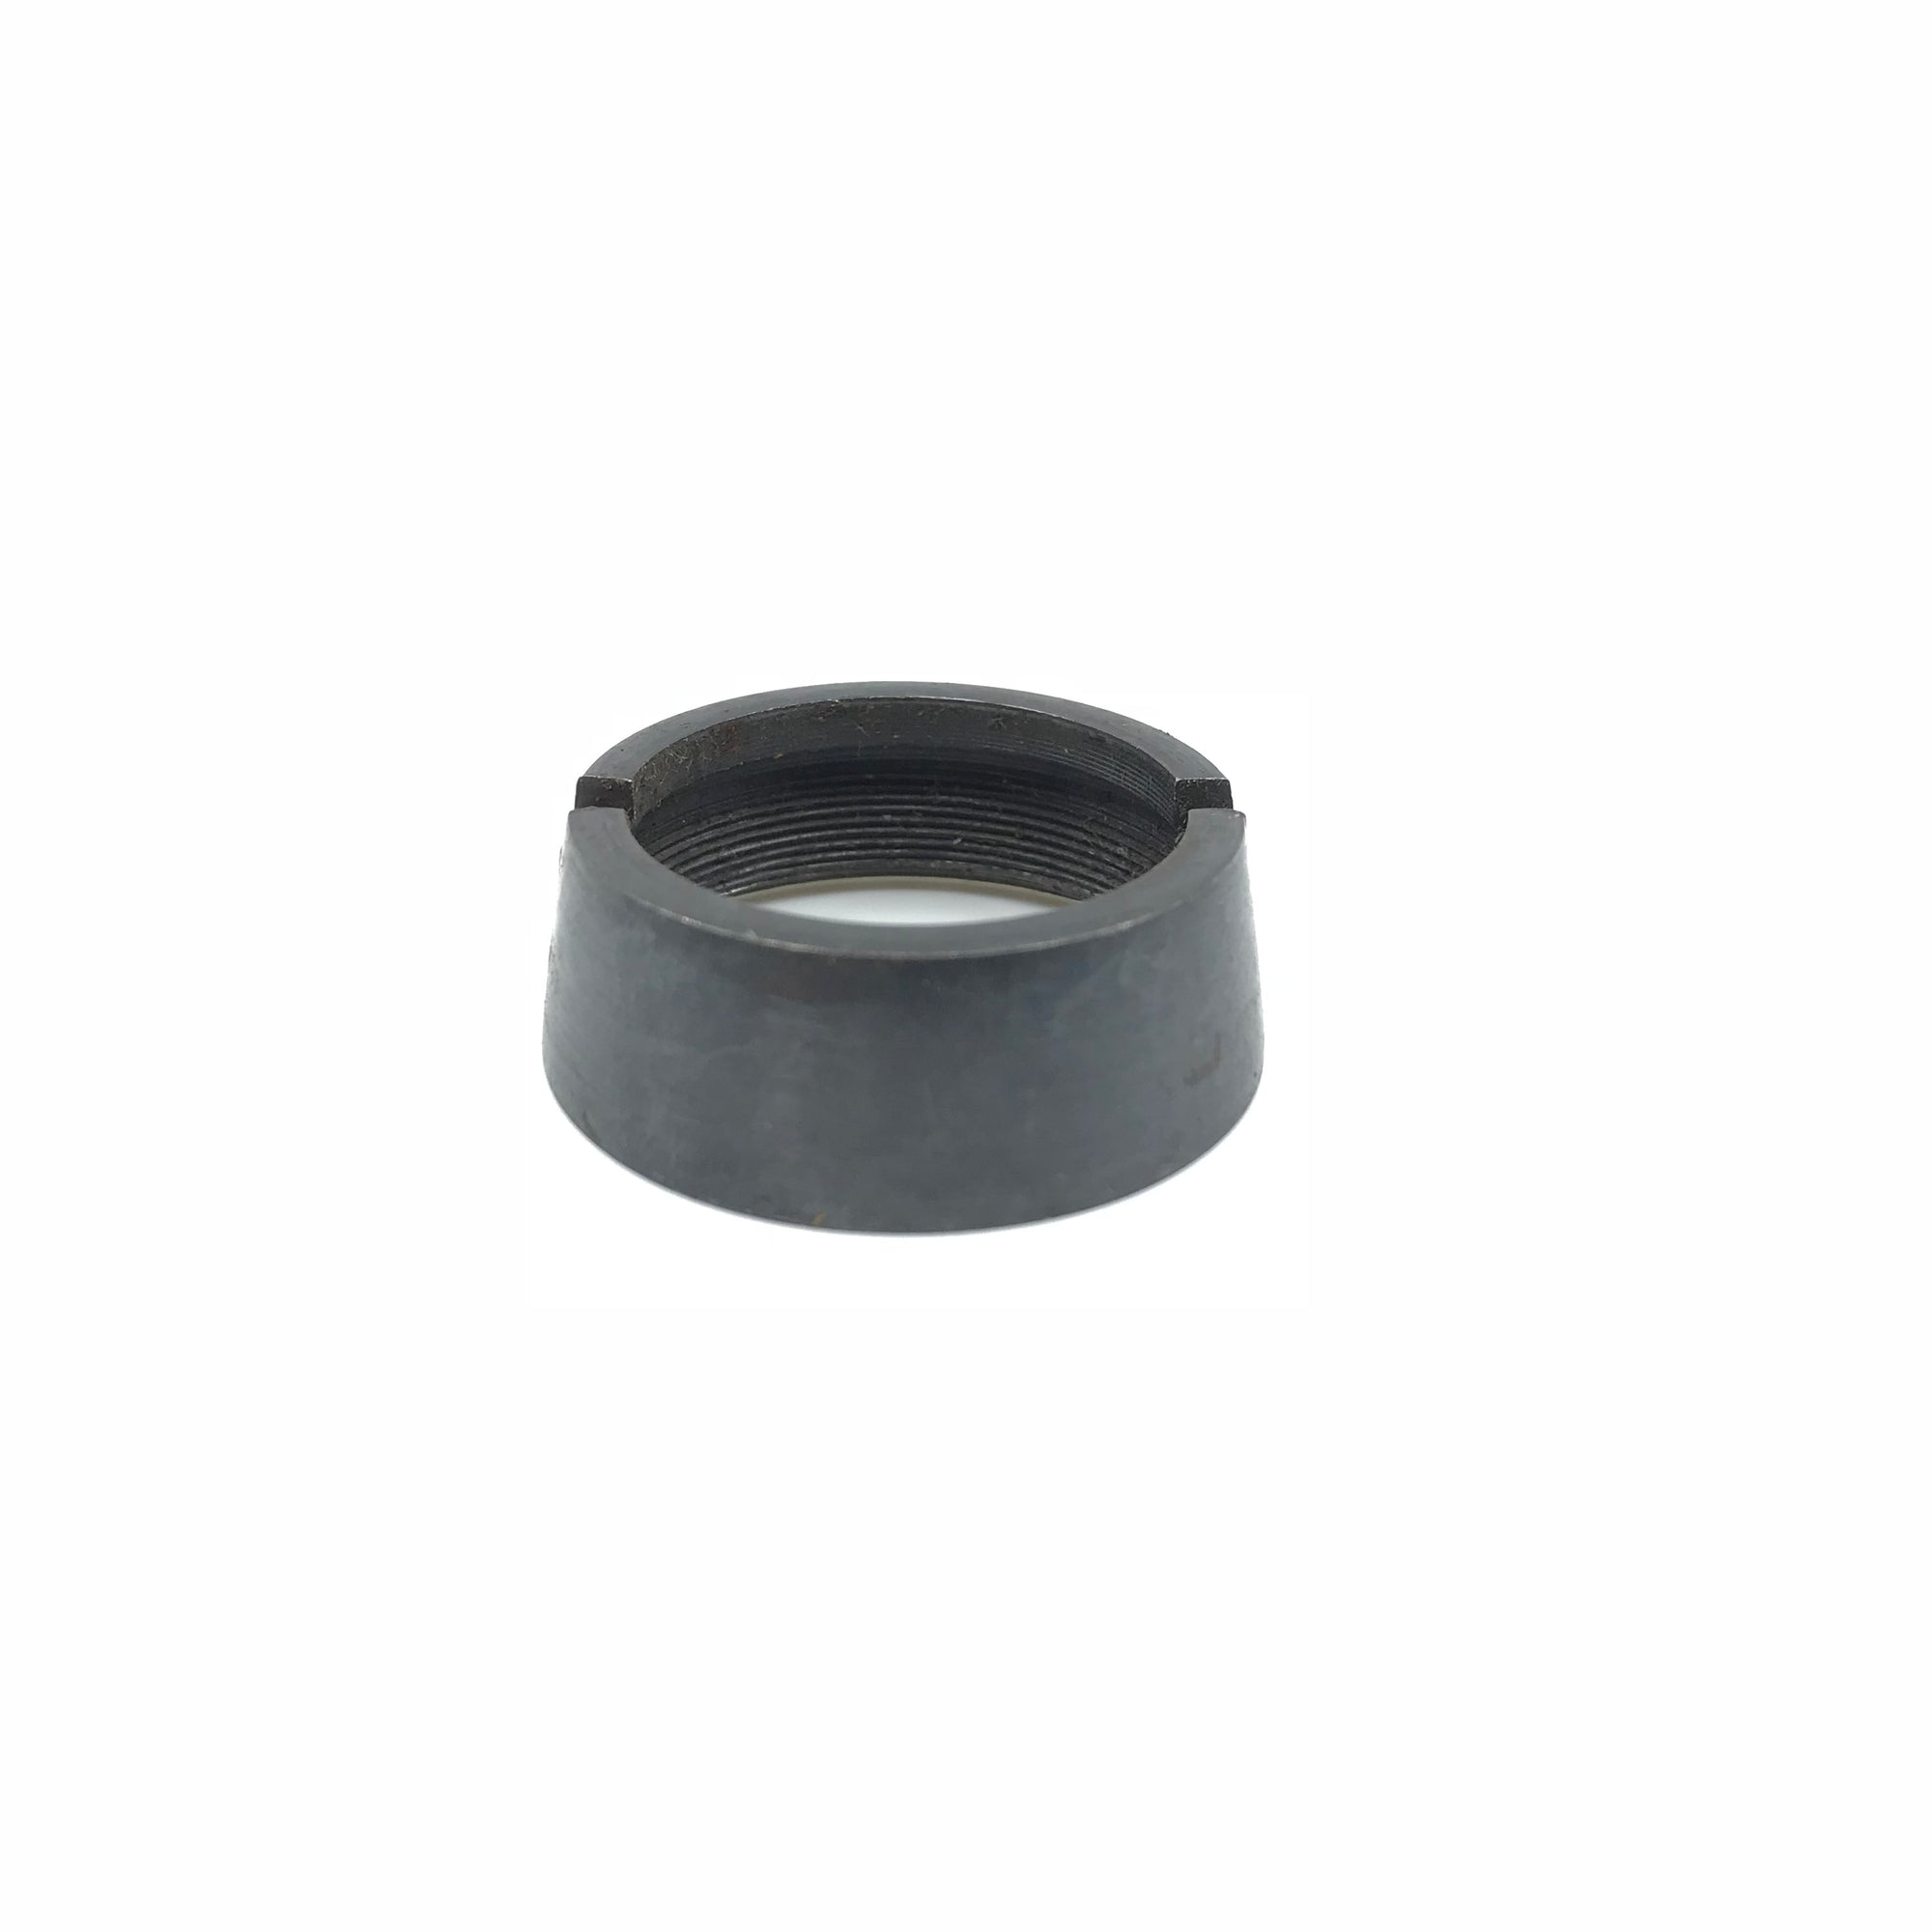 Squires Bingham 1052960A Forward Poerating Sleeve Front Nut